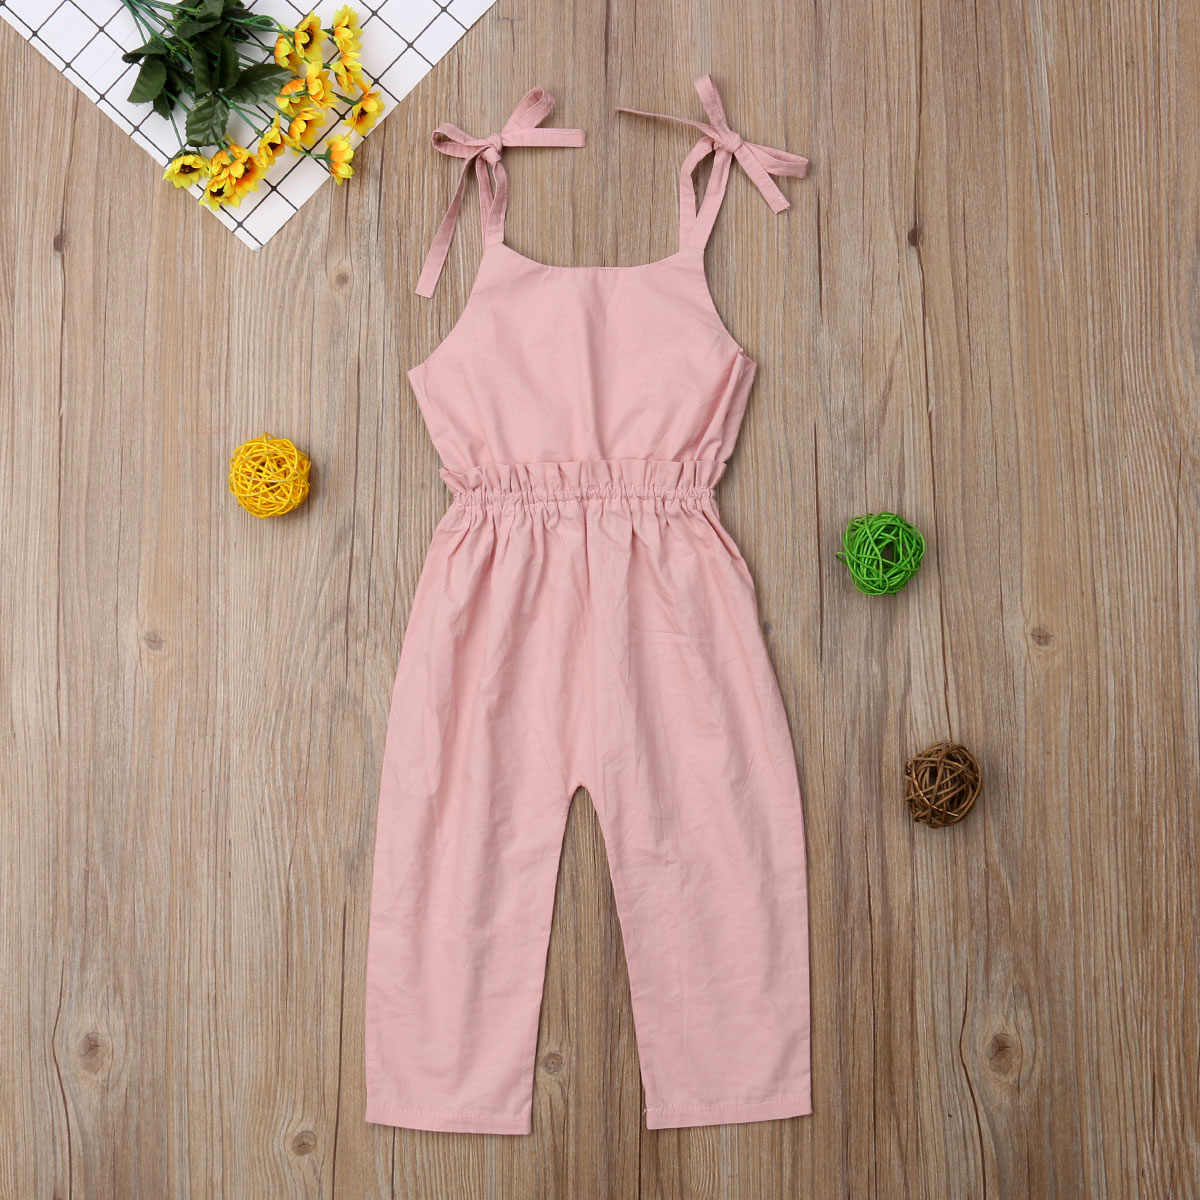 Newborn Kid Baby Girl Ruffle Pants Romper Overalls Cotton Outfits Strap Clothes